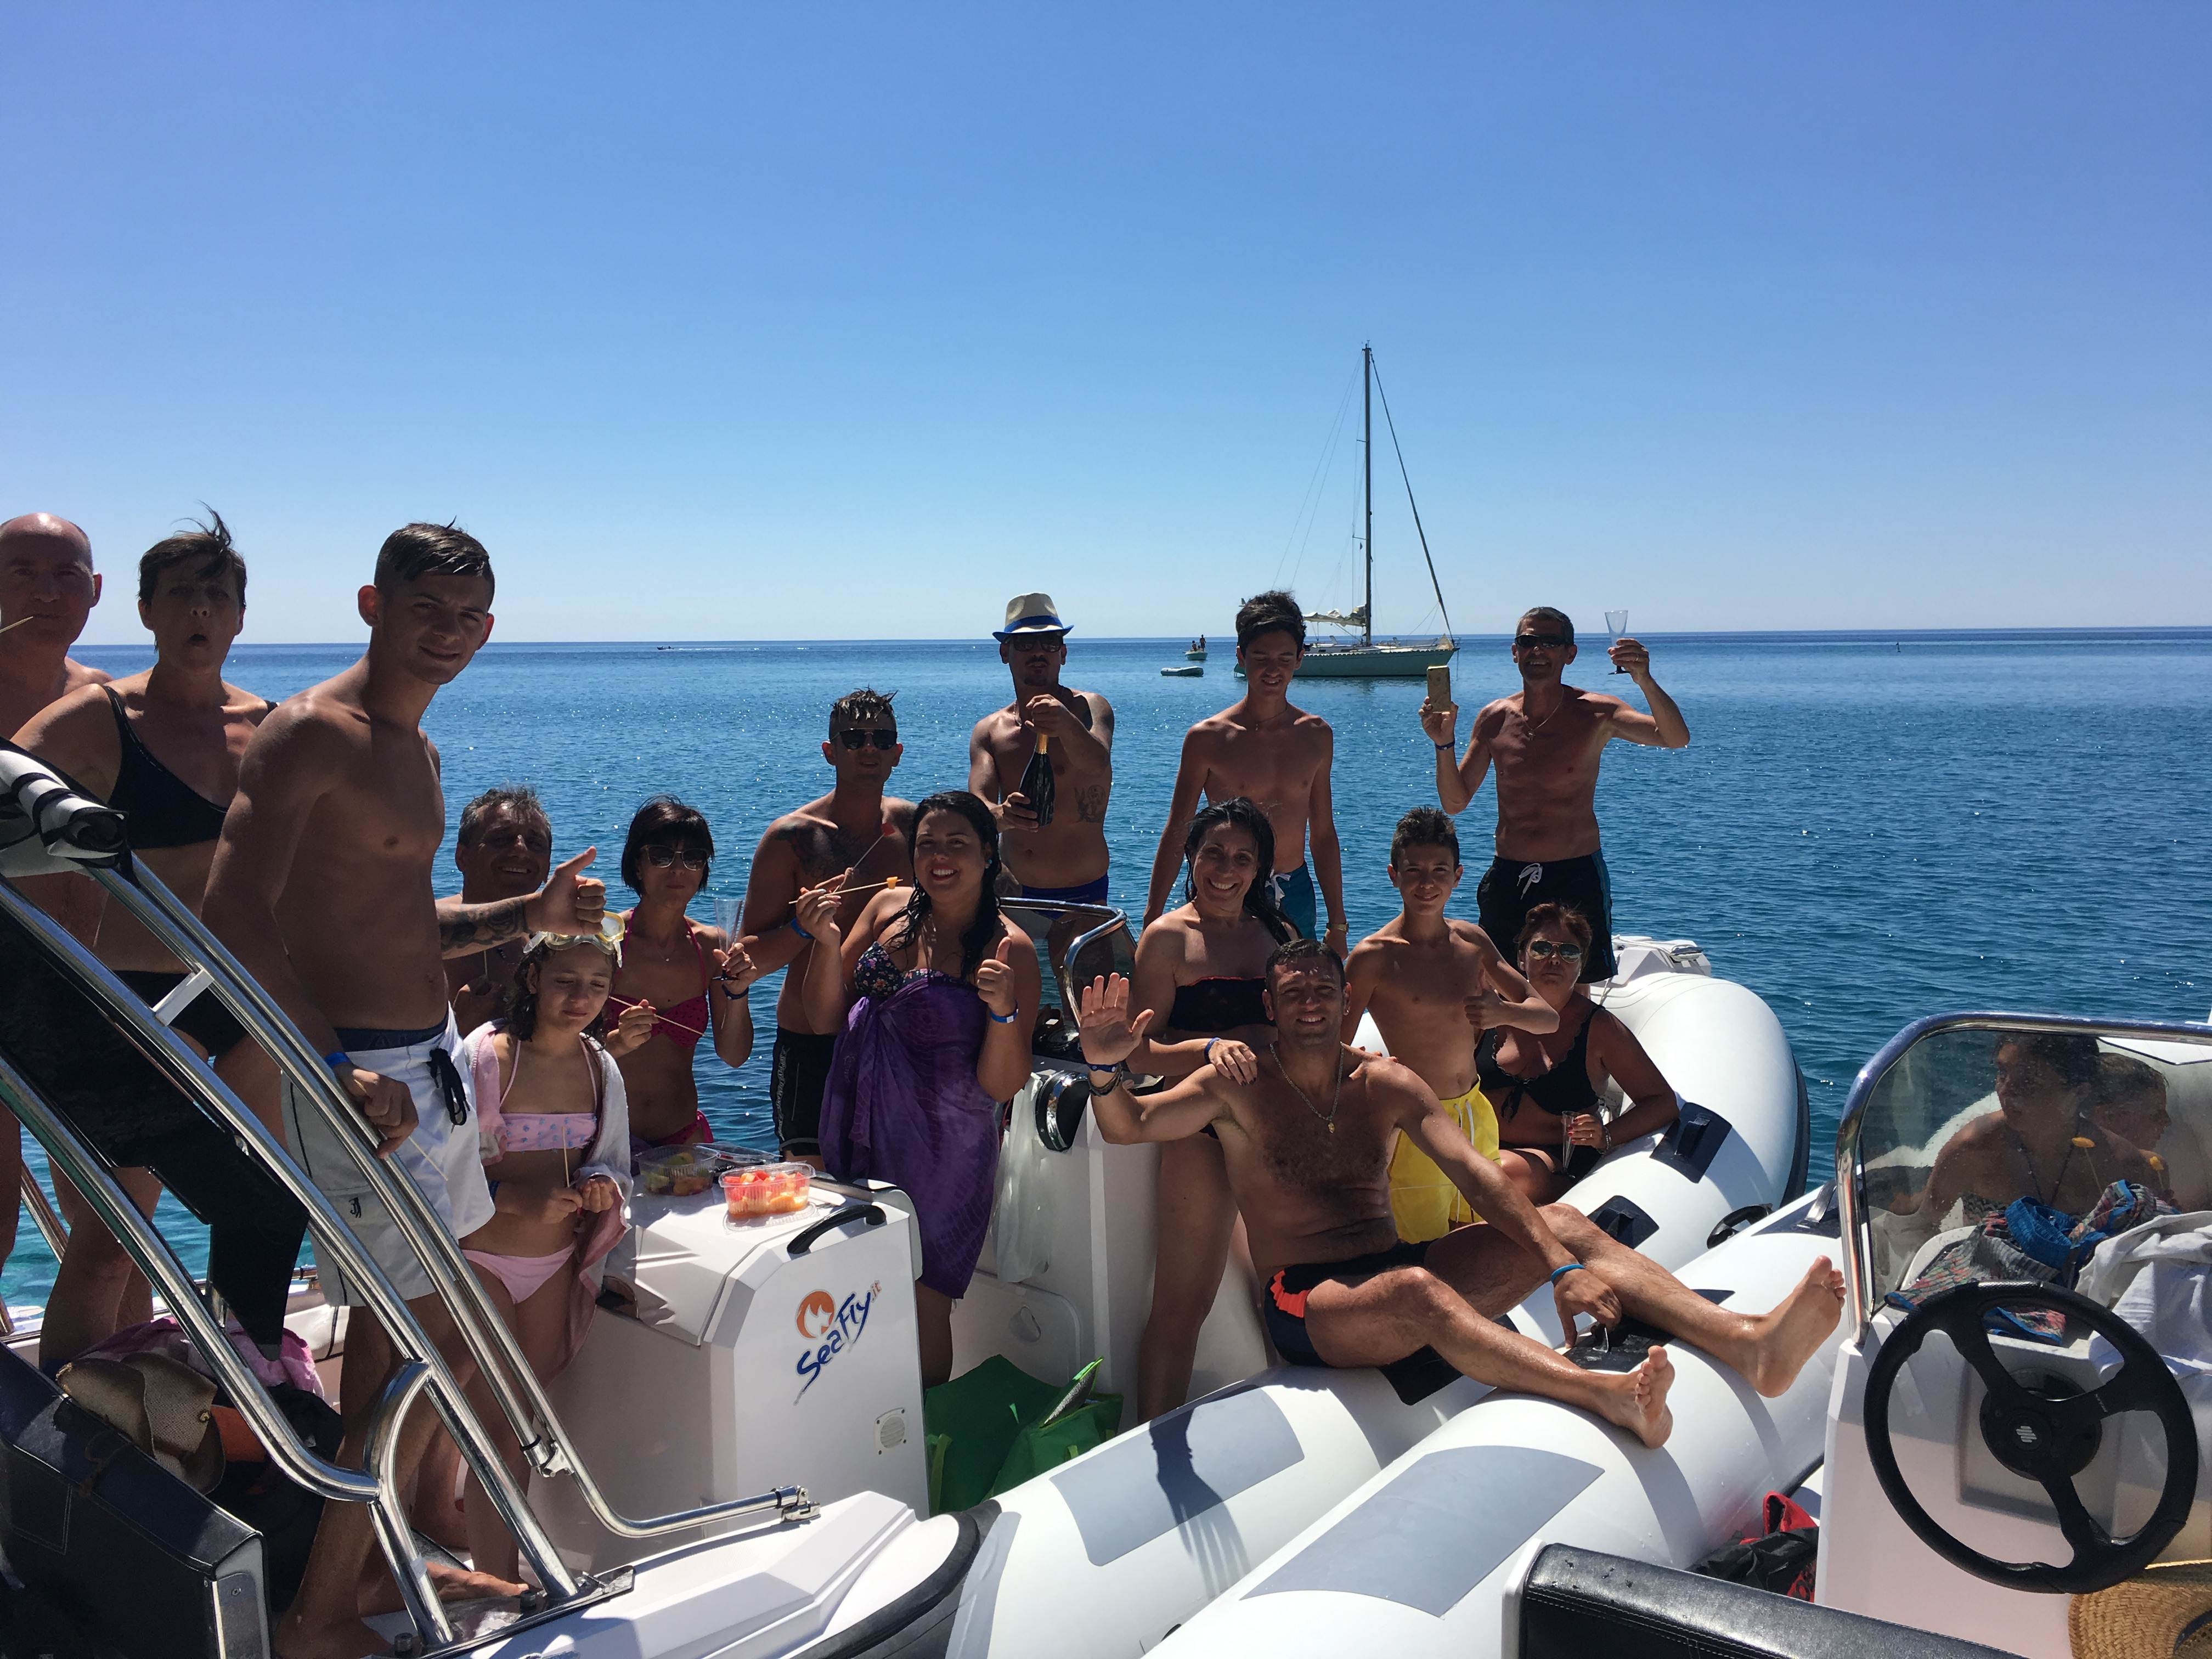 Excursion of the Ionian coast by rubber boat